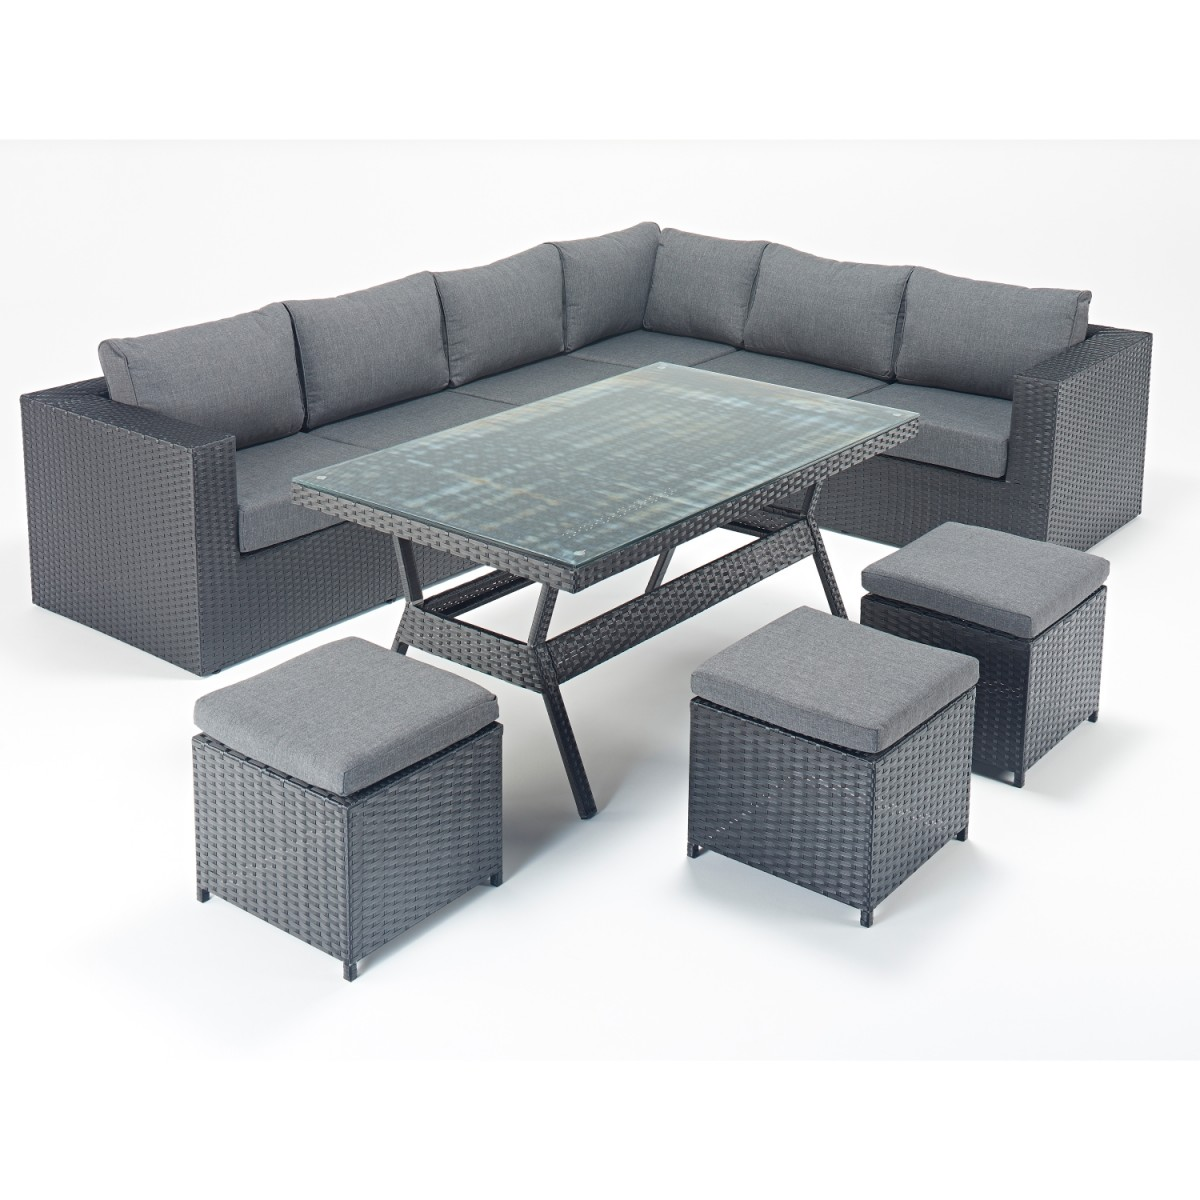 Rattan set prestige corner sofa dining set wgf 313 right for Corner dining set